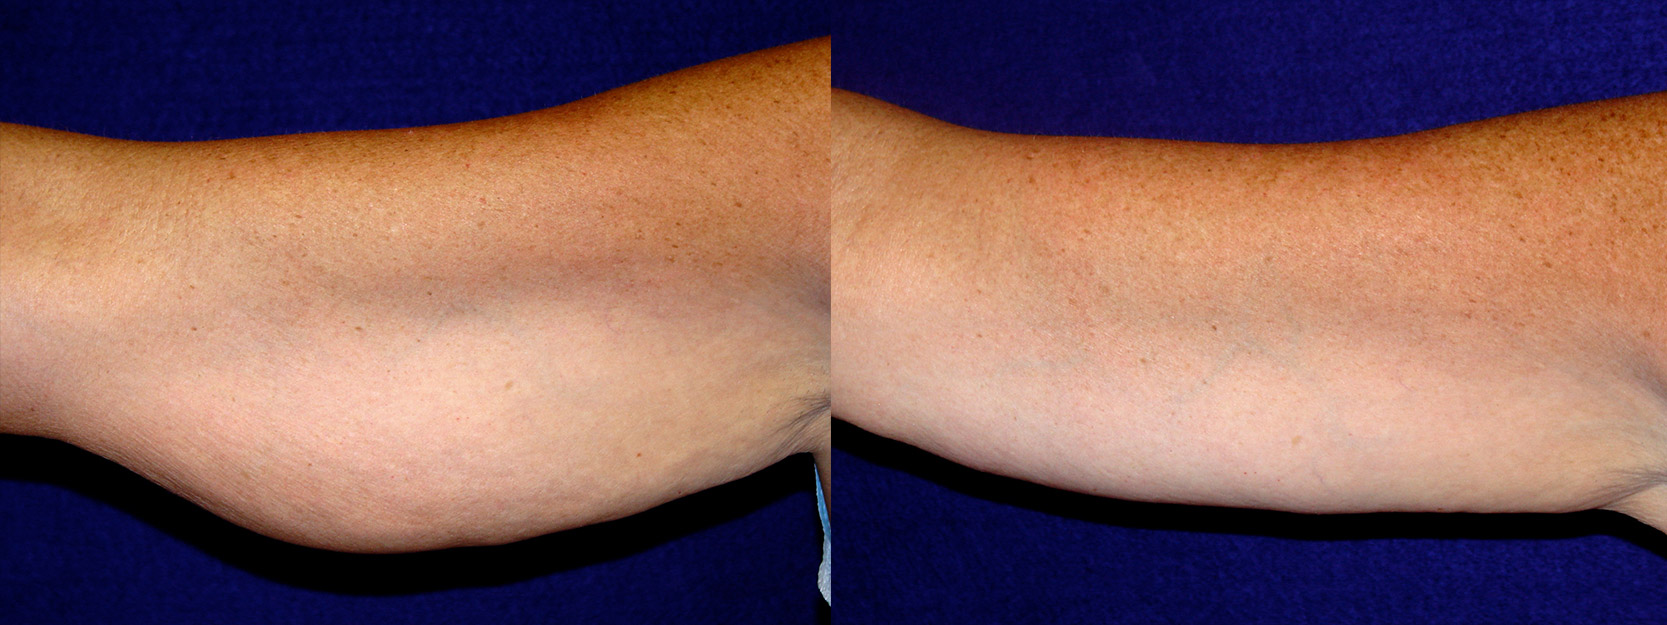 Frontal View - Right Arm - Arm Lift After Weight Loss